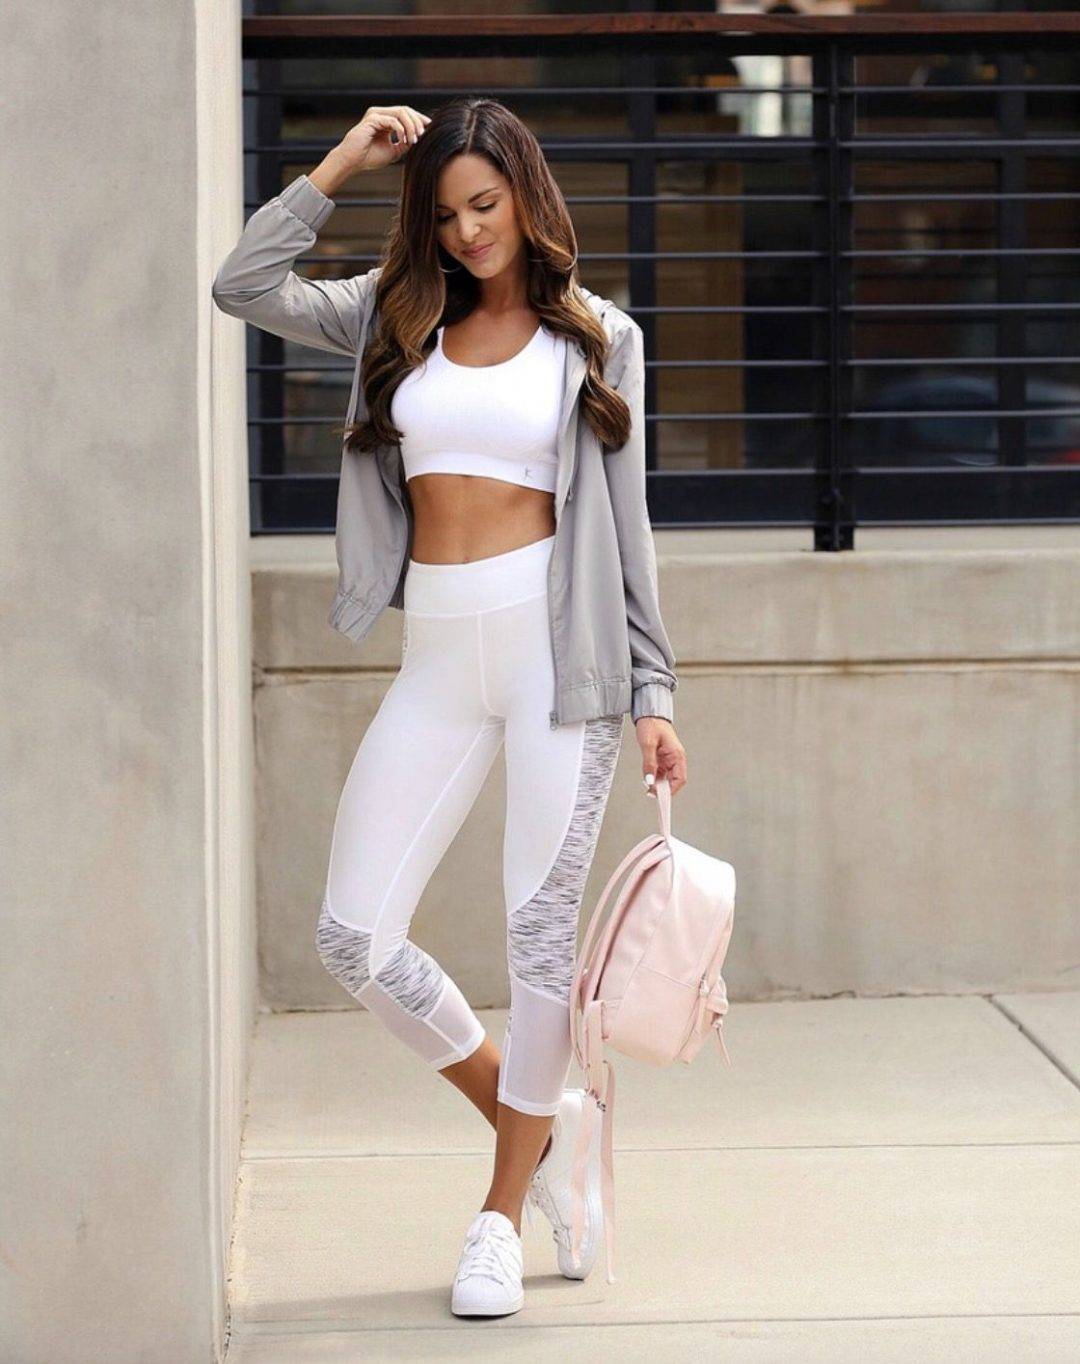 11+ Surprisingly Cute Sporty Outfits To Try: All athleisure lovers ahoy! Check out these sporty chic outfits, casual outfits and stylish gym outfits to get inspired for the new season. | White high waisted leggings with white sports bra, pink backpack and grey hoodie. Image ©MumuAndMacaroons #sportyoutfits #casualoutfits #athleisure